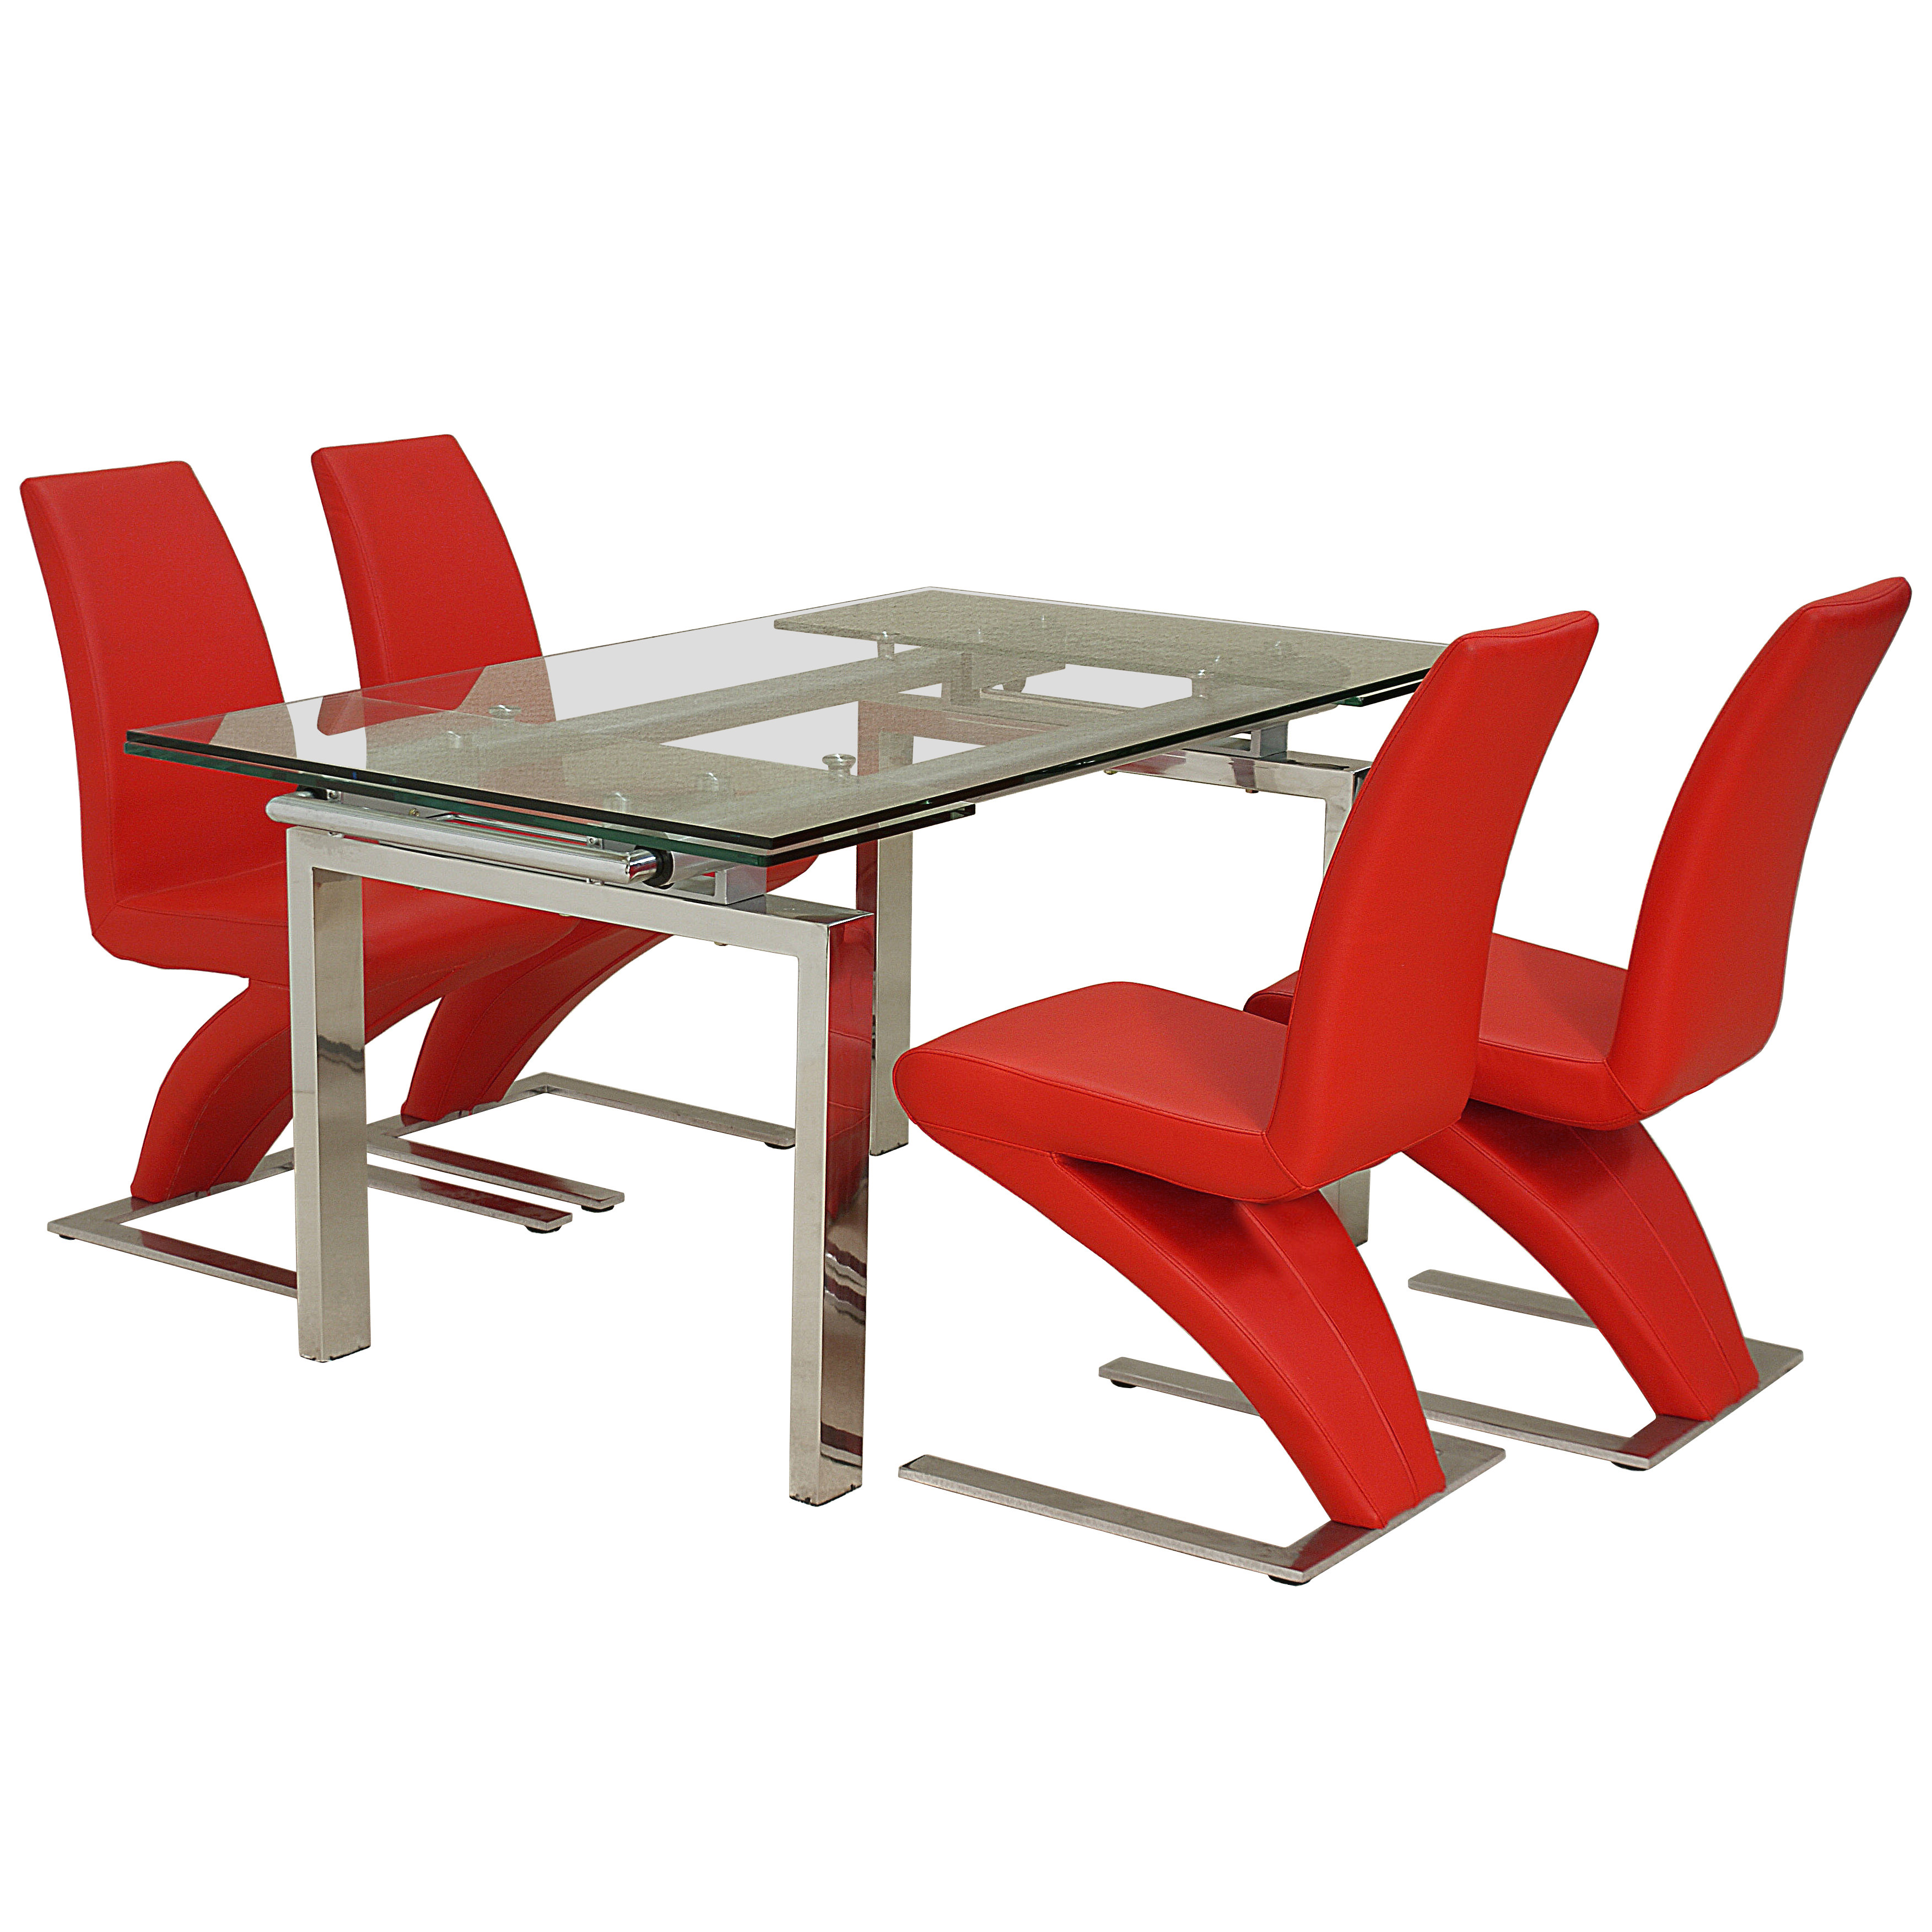 Chrome amp Clear Glass Extending Dining Table and Chair Set  : h426crystalextendingdiningset4blackankarachairs1 from www.ebay.co.uk size 3506 x 3506 jpeg 1144kB